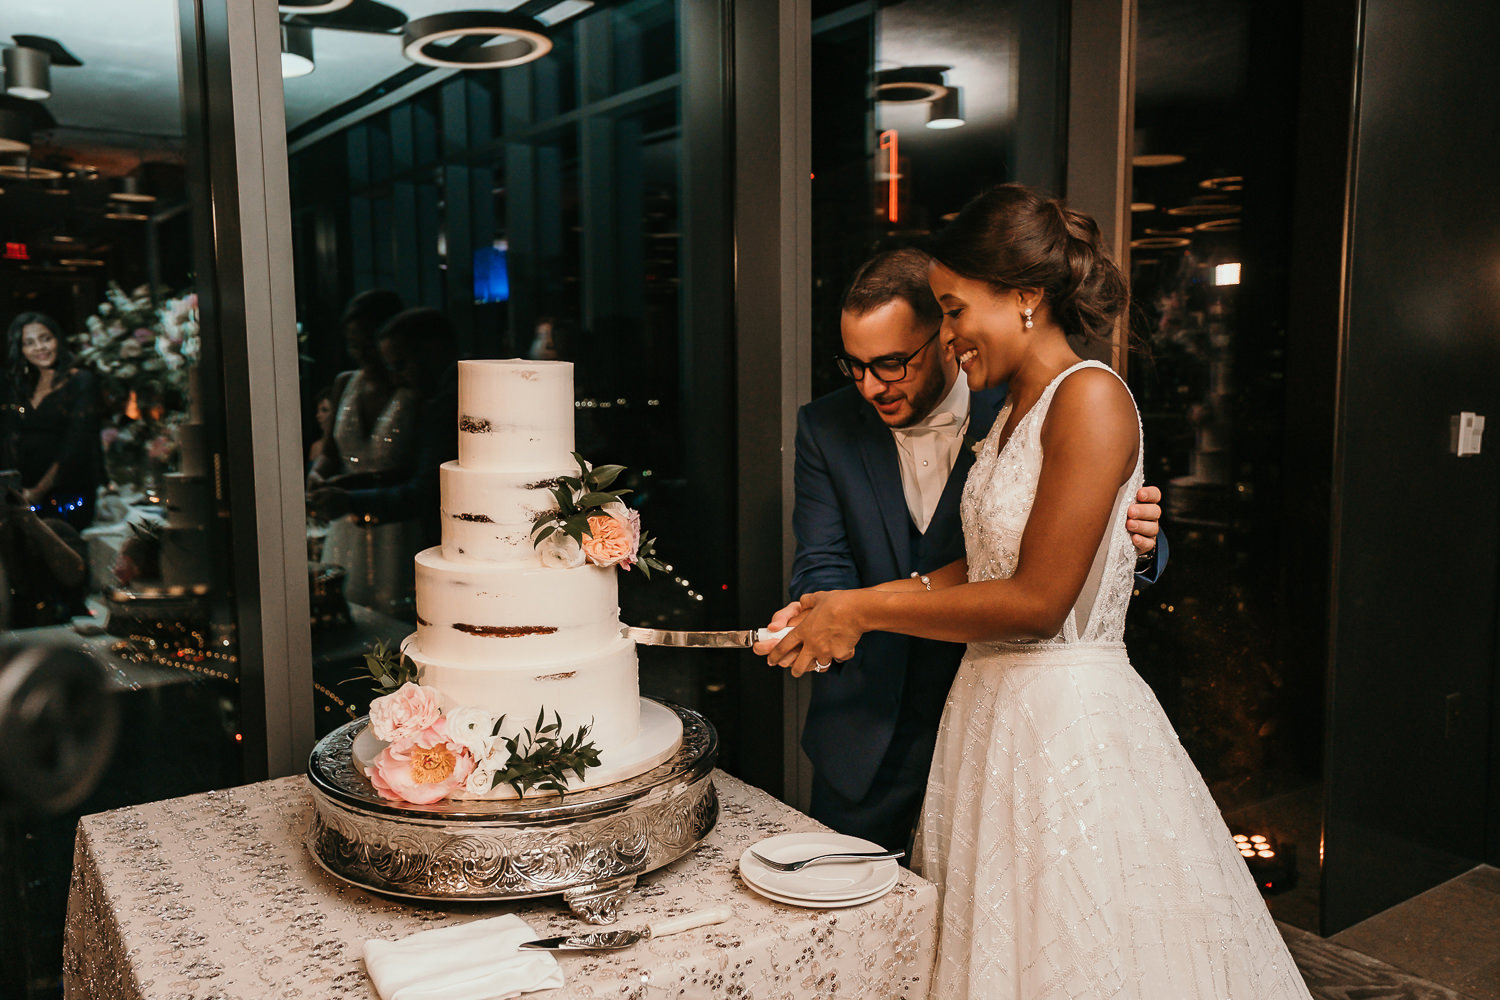 newlyweds cutting their cake